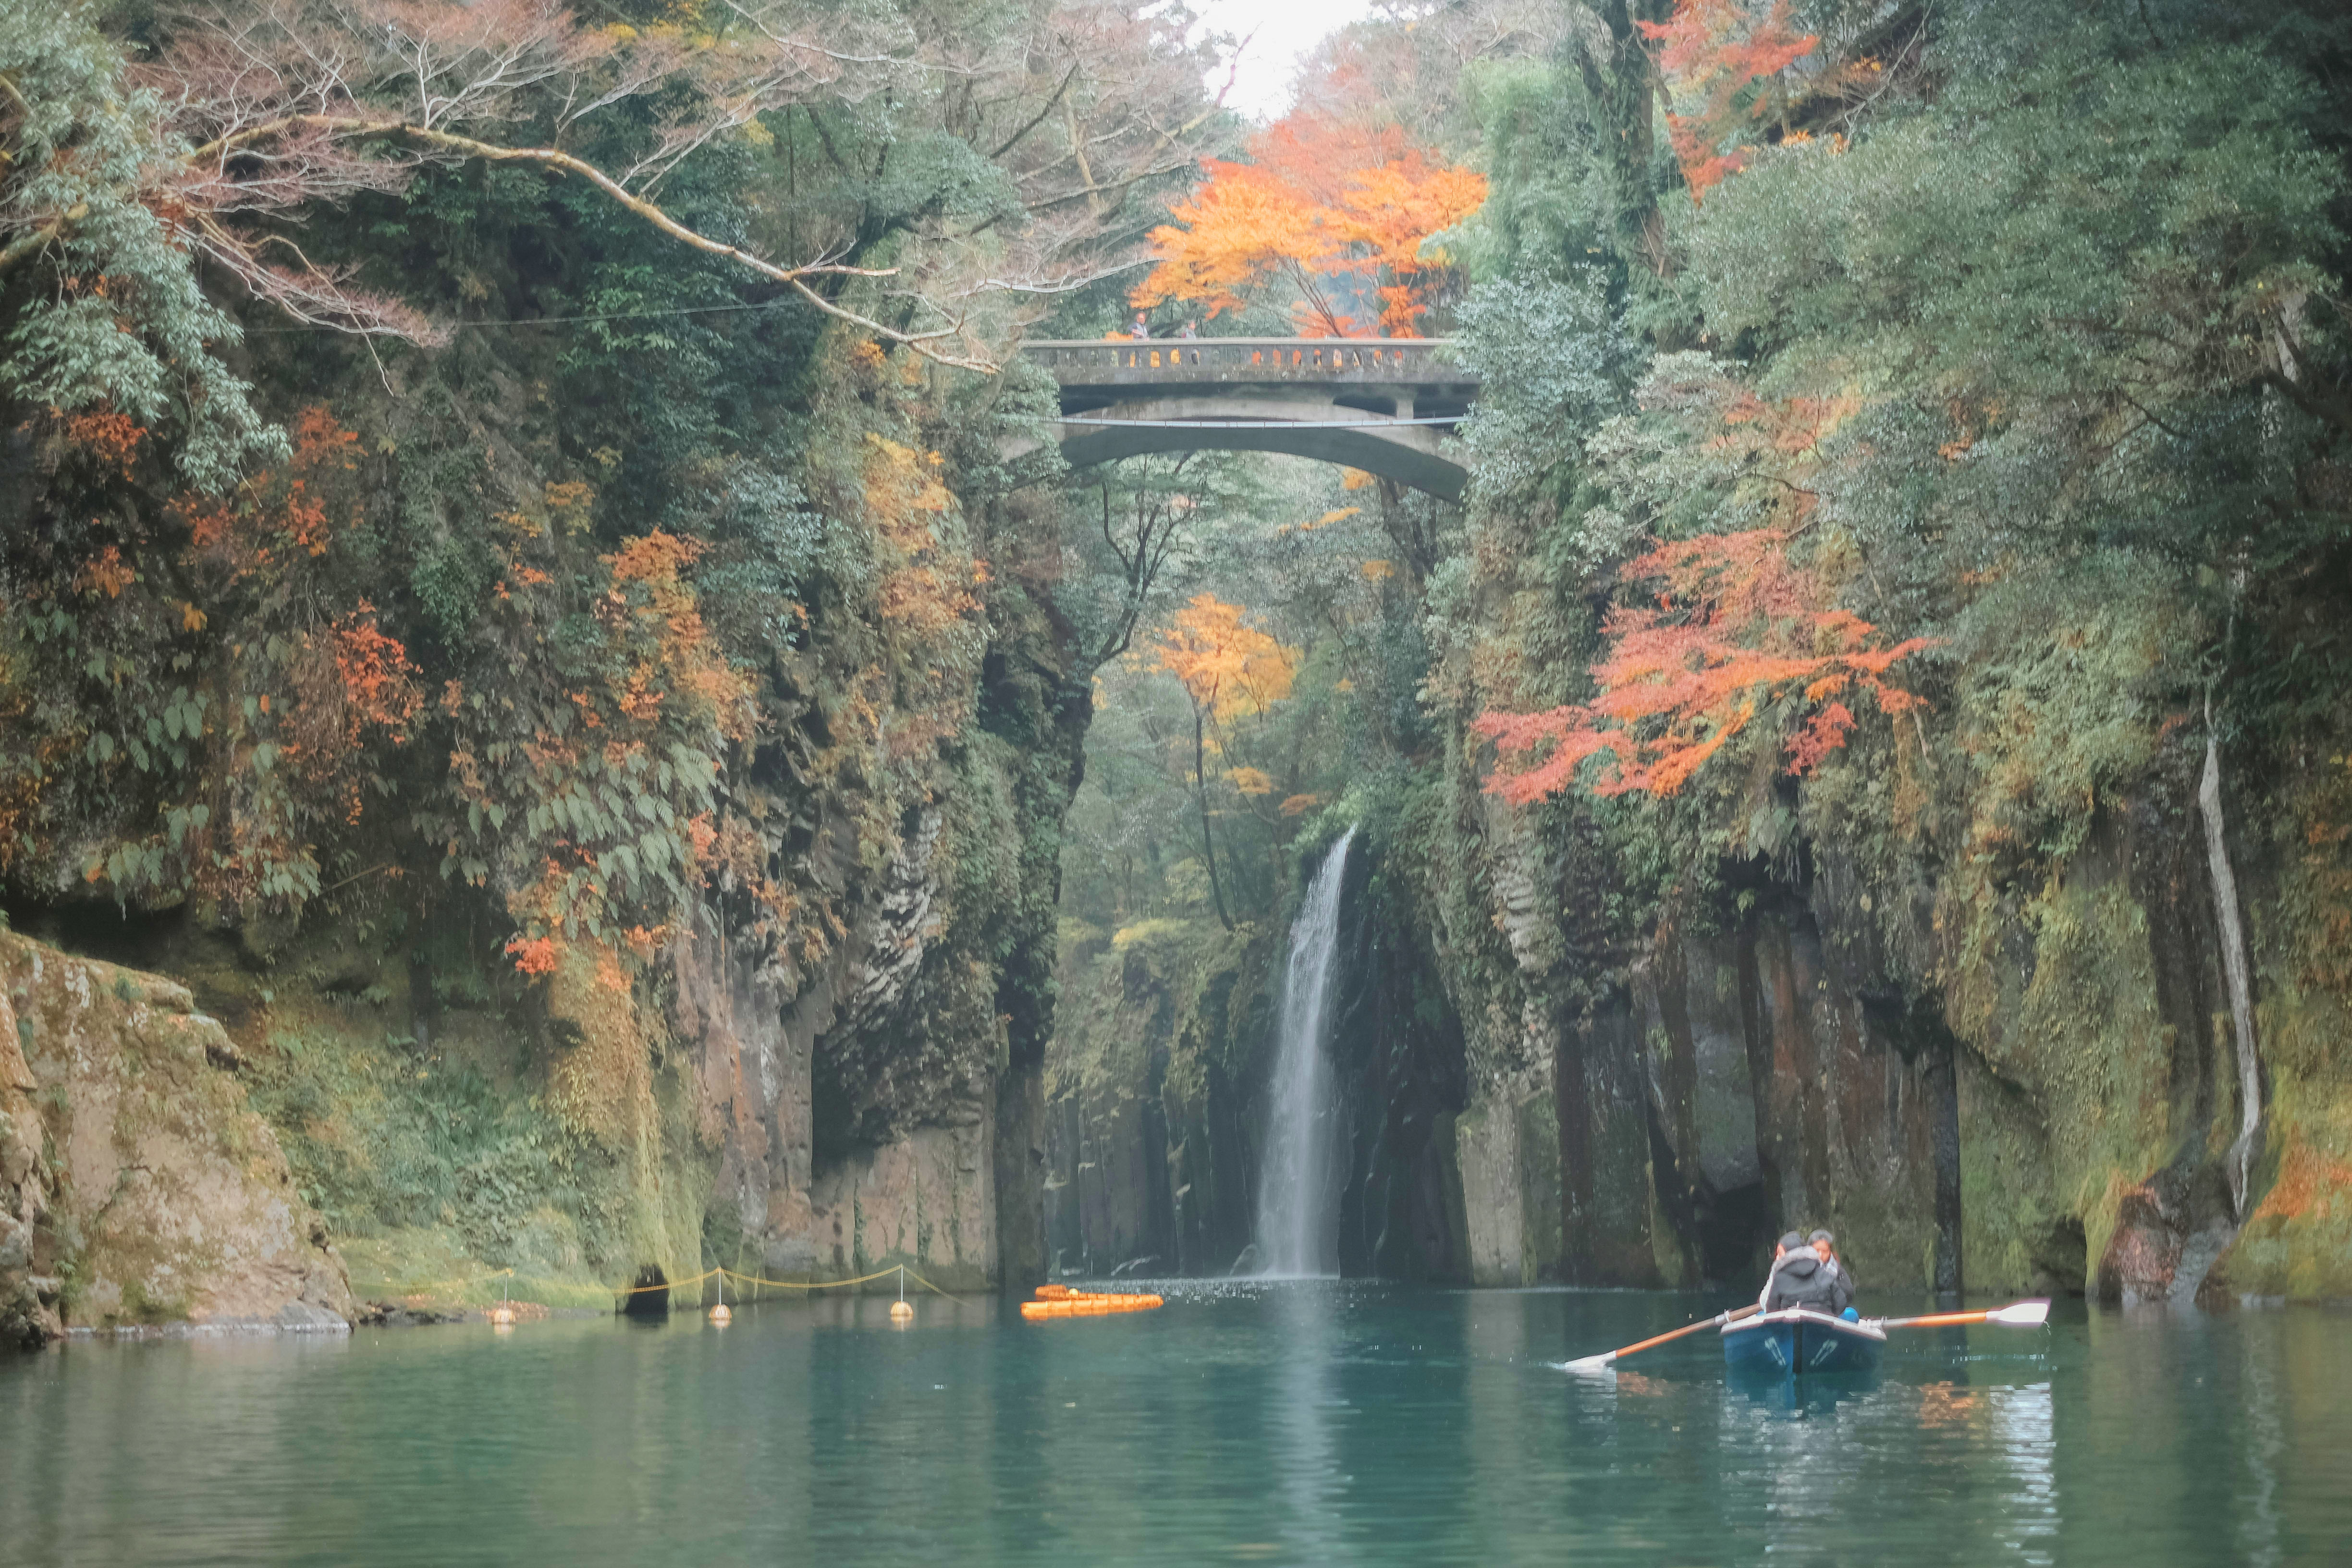 Takachiho Gorge: A picturesque land of myths